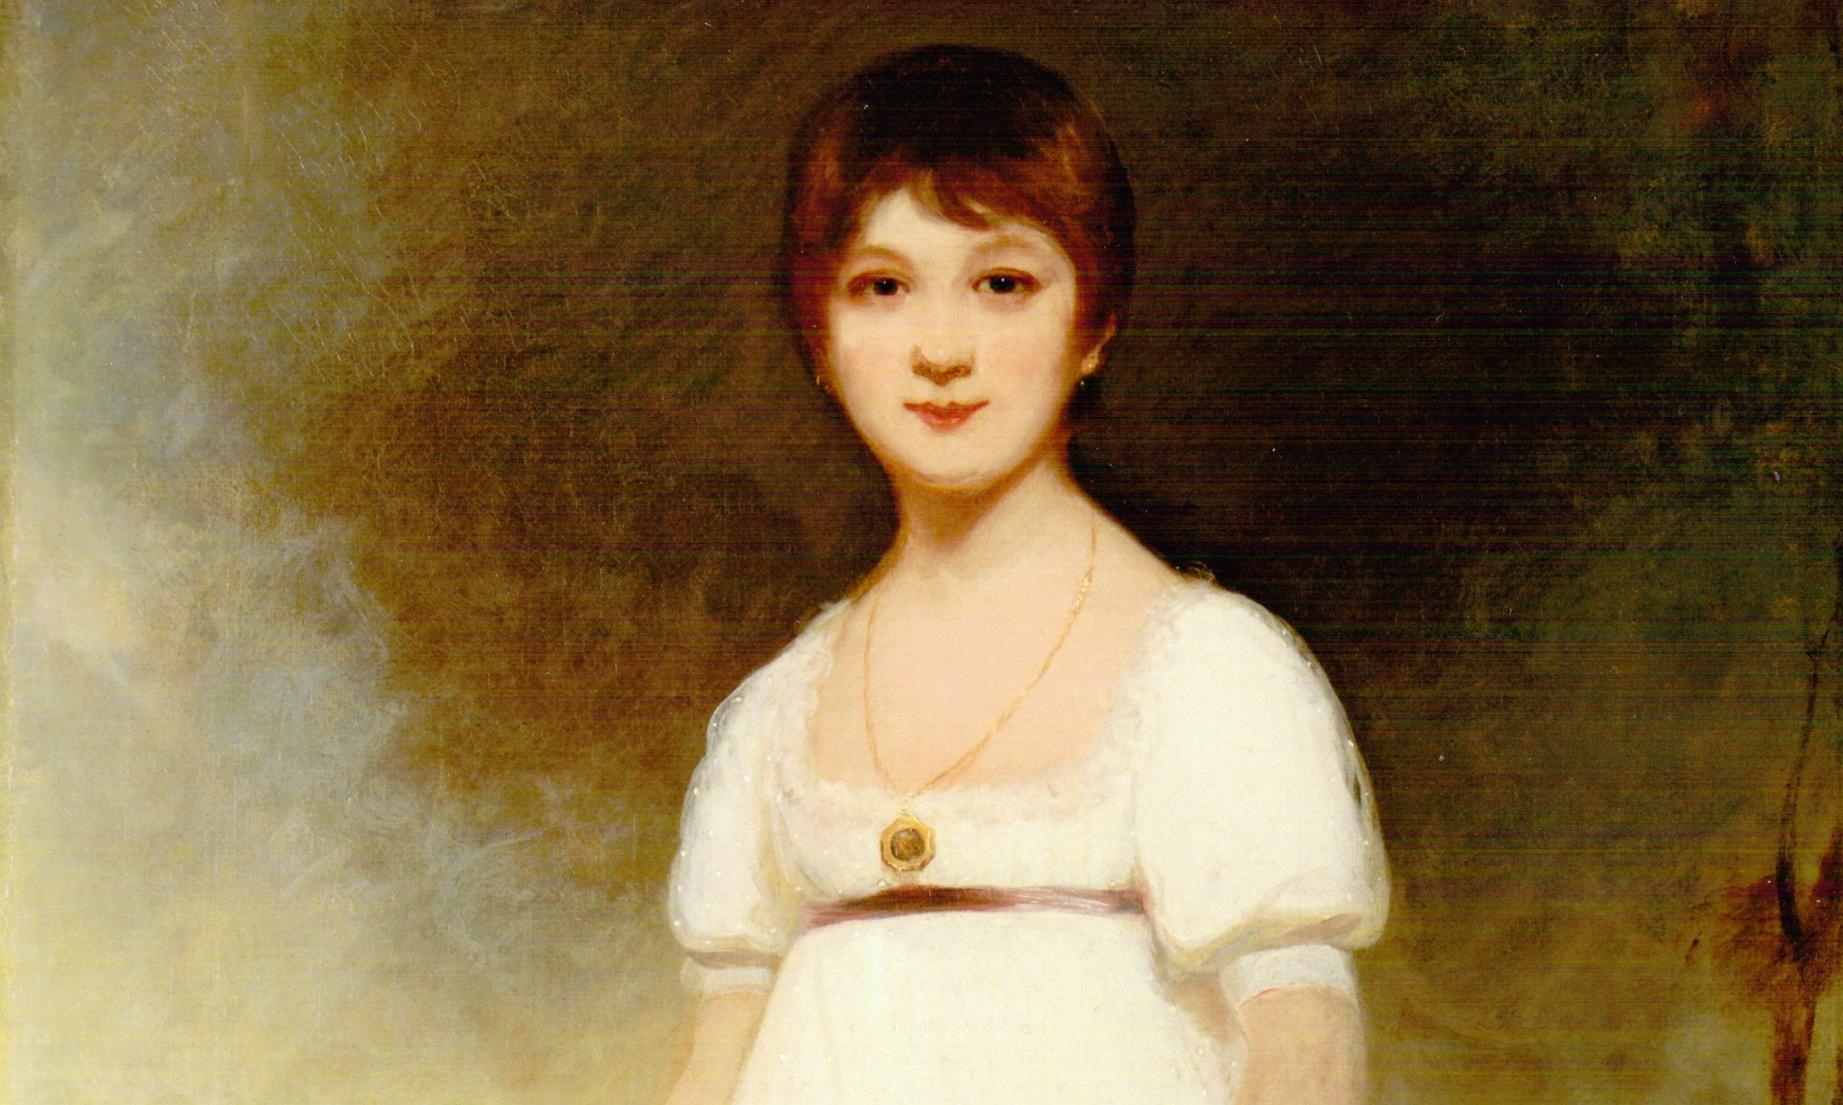 Jane Austen? Family say note establishes disputed portrait's identity